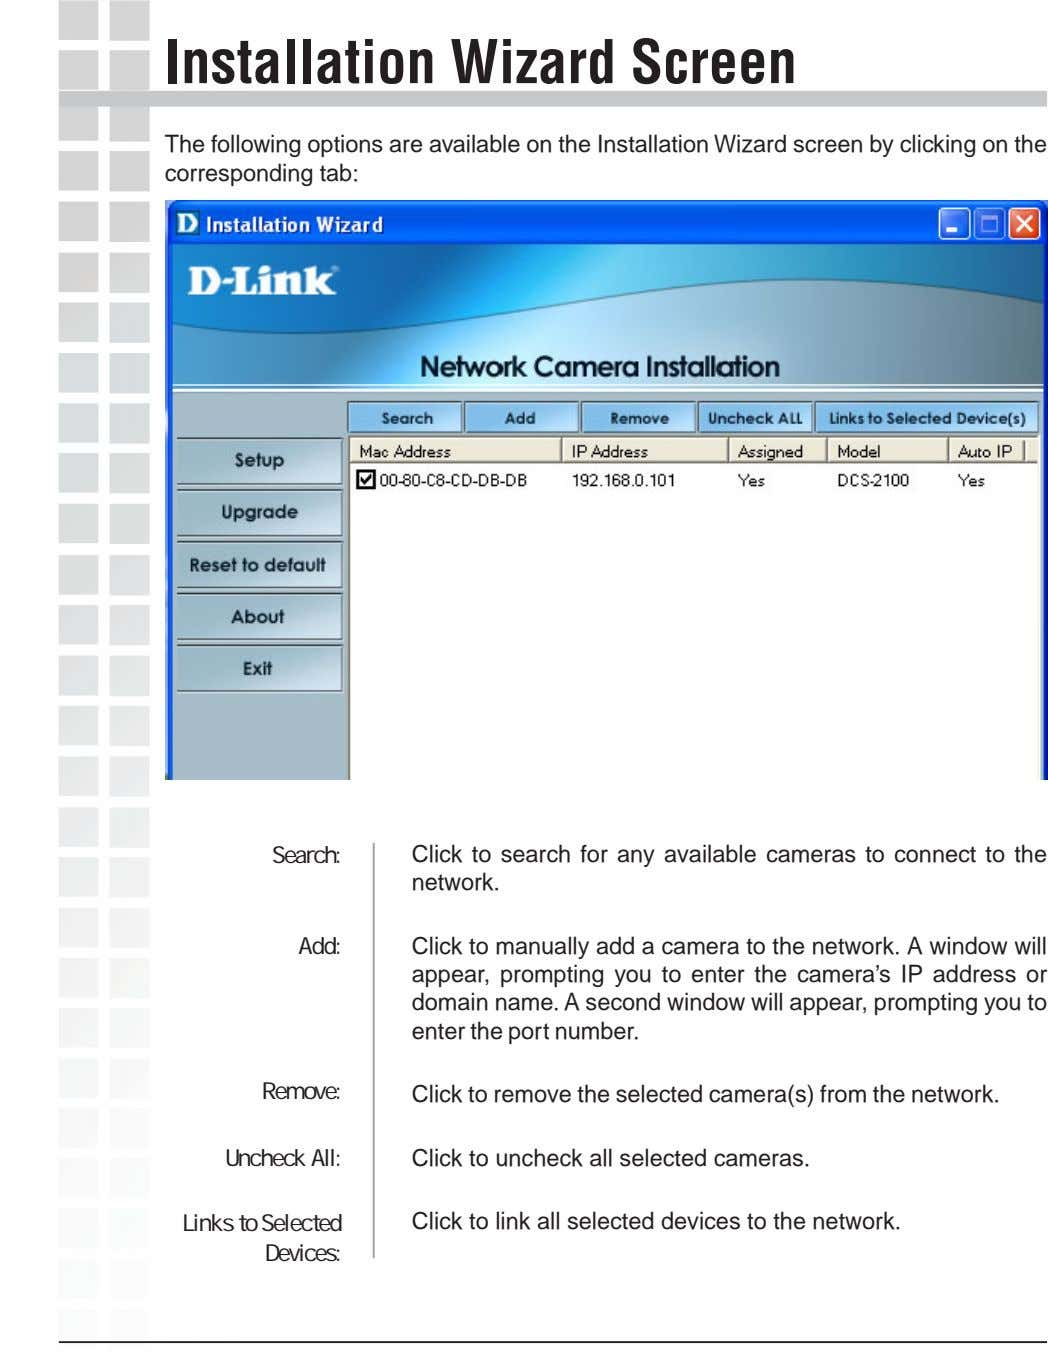 Installation Wizard Screen The following options are available on the Installation Wizard screen by clicking